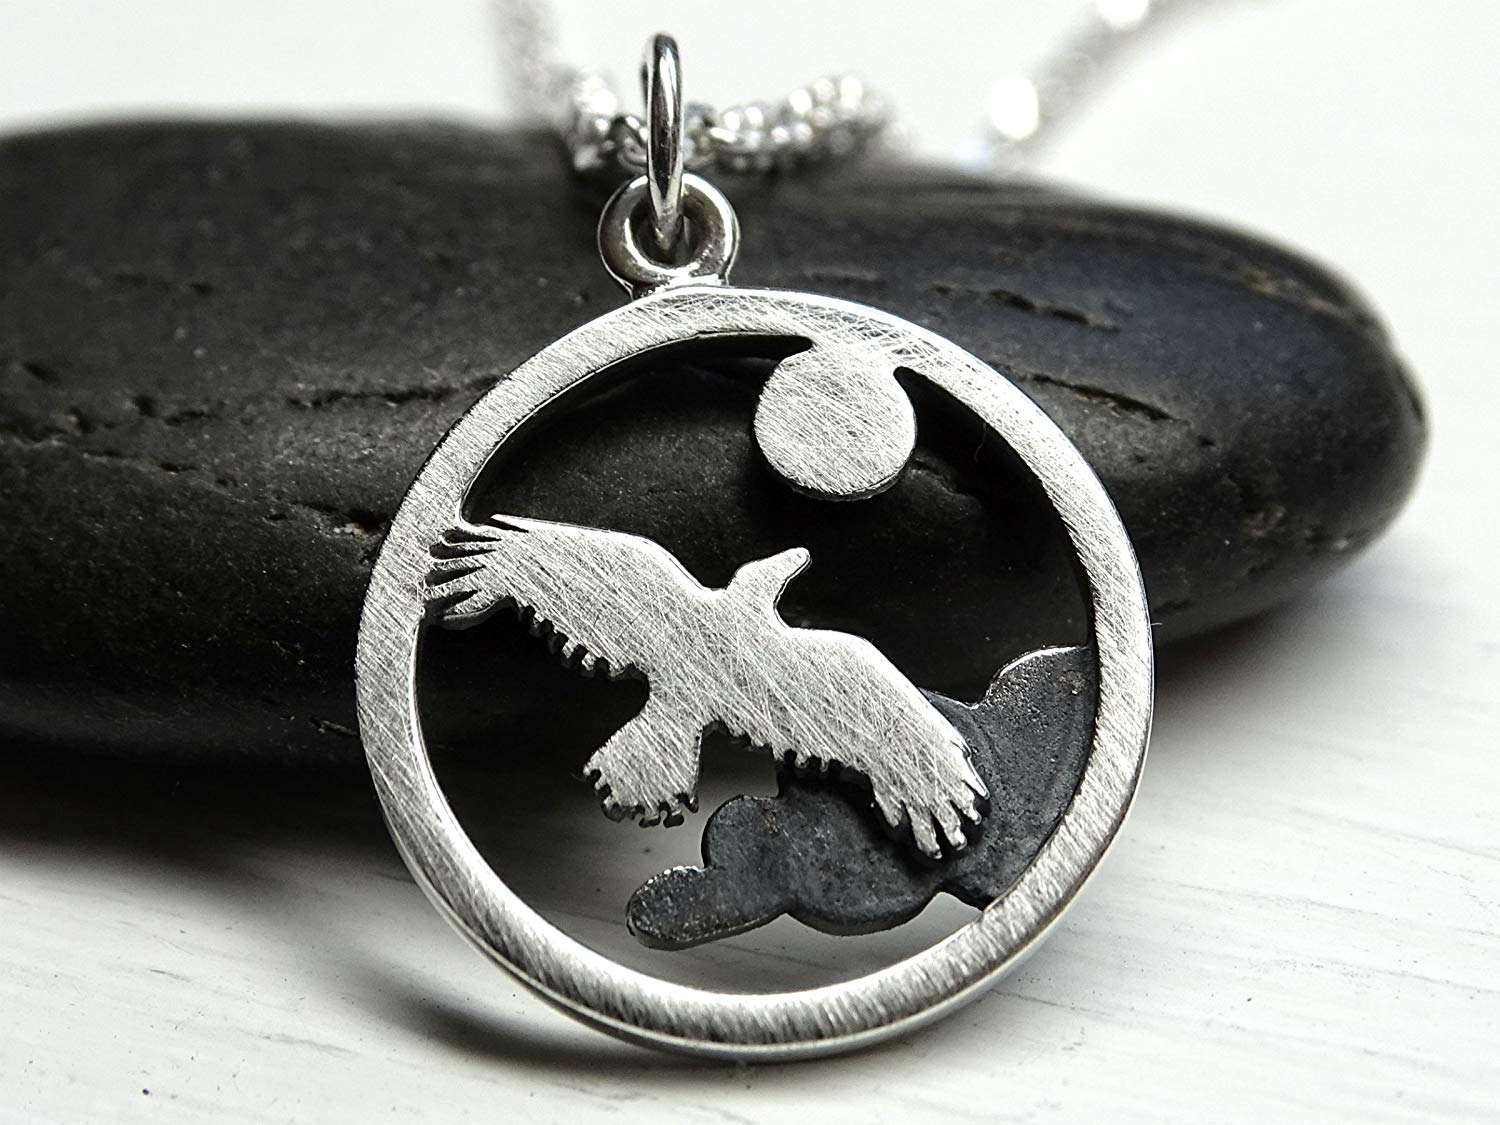 295a8fc05 Get Quotations · silver eagle pendant, small charm pendant silver necklace  bird and sky pendant black silver,